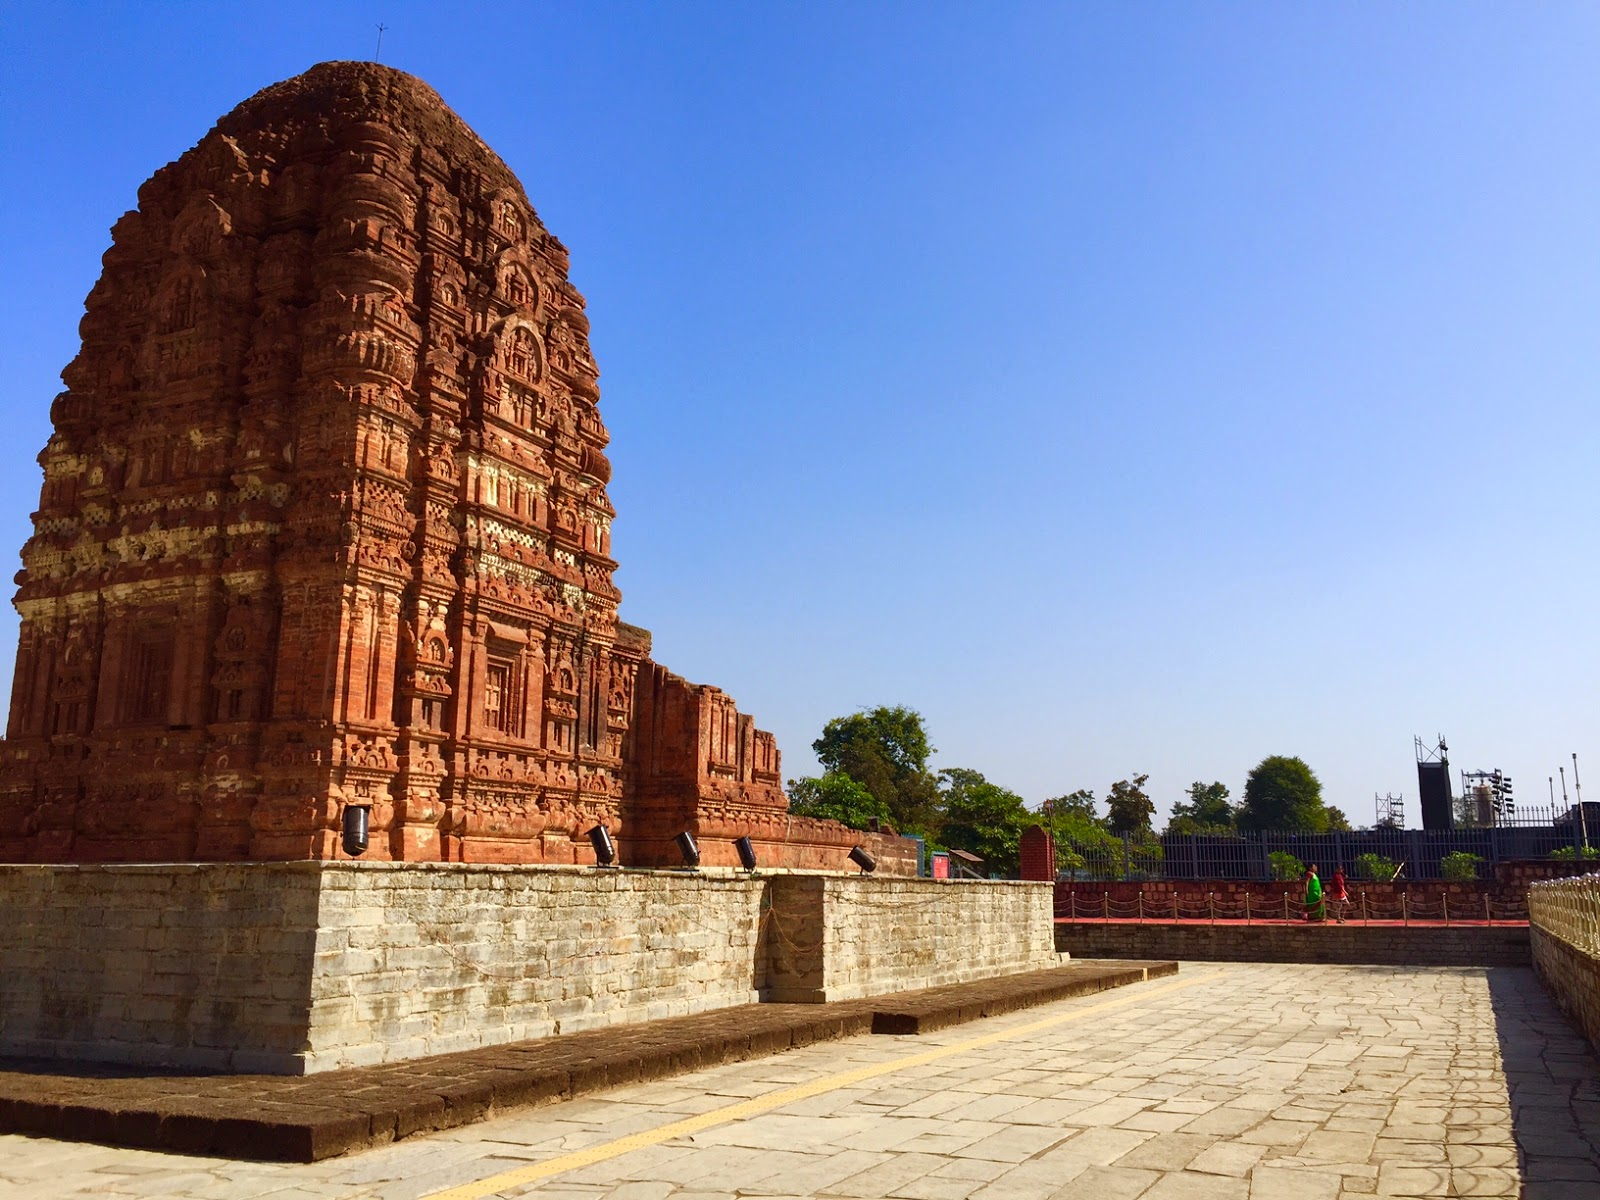 Sirpur travel chhattisgarh lakshman temple brick old travel tourism